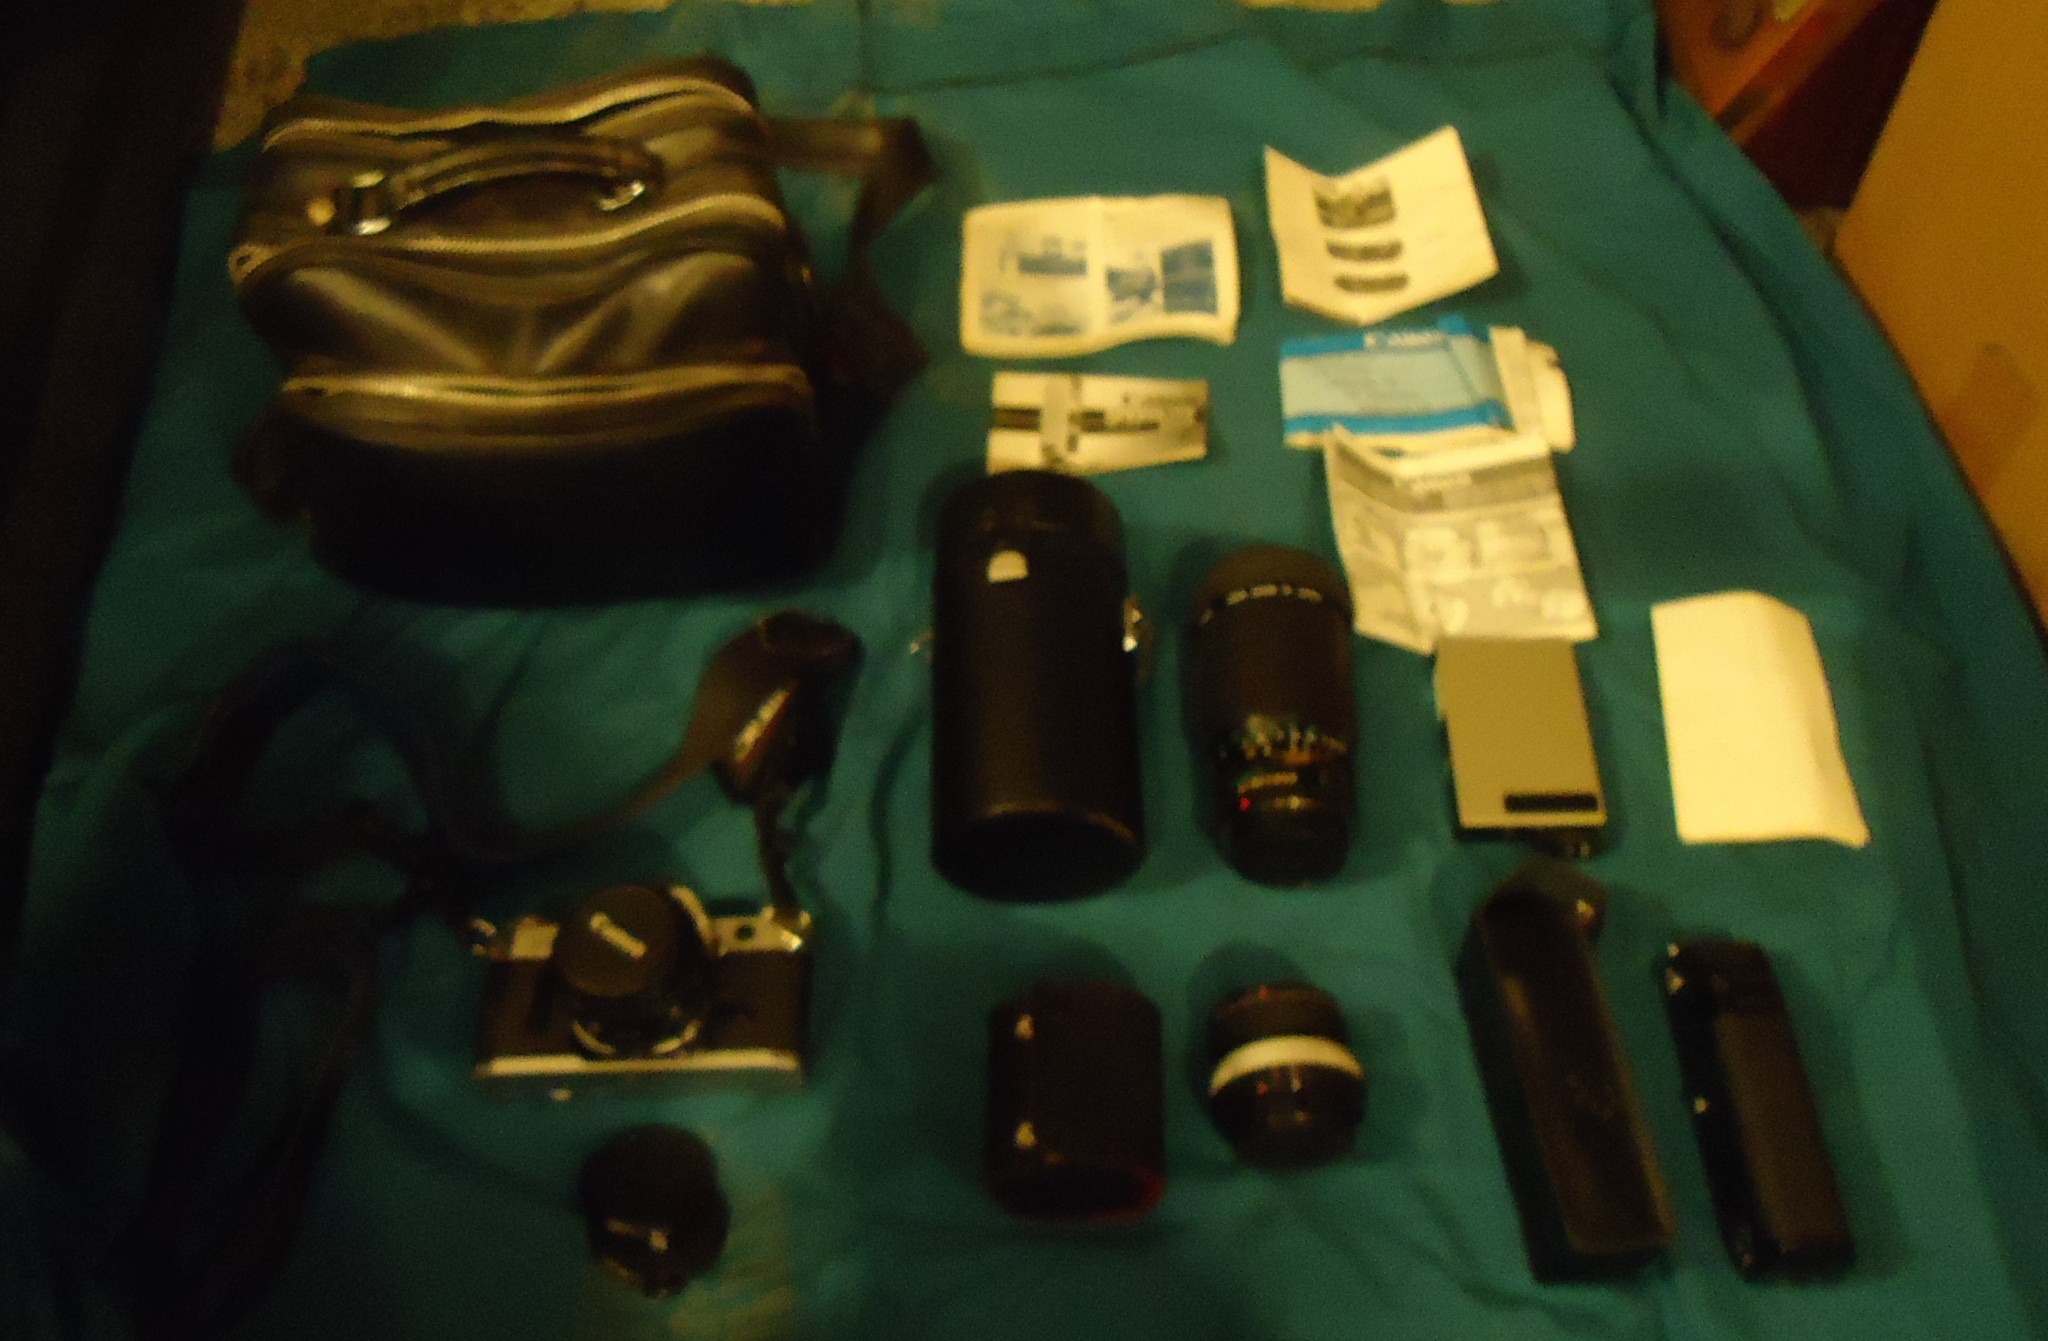 Vintage CANON AE-1 35MM CAMERA W/CASE & ACCESSORIES